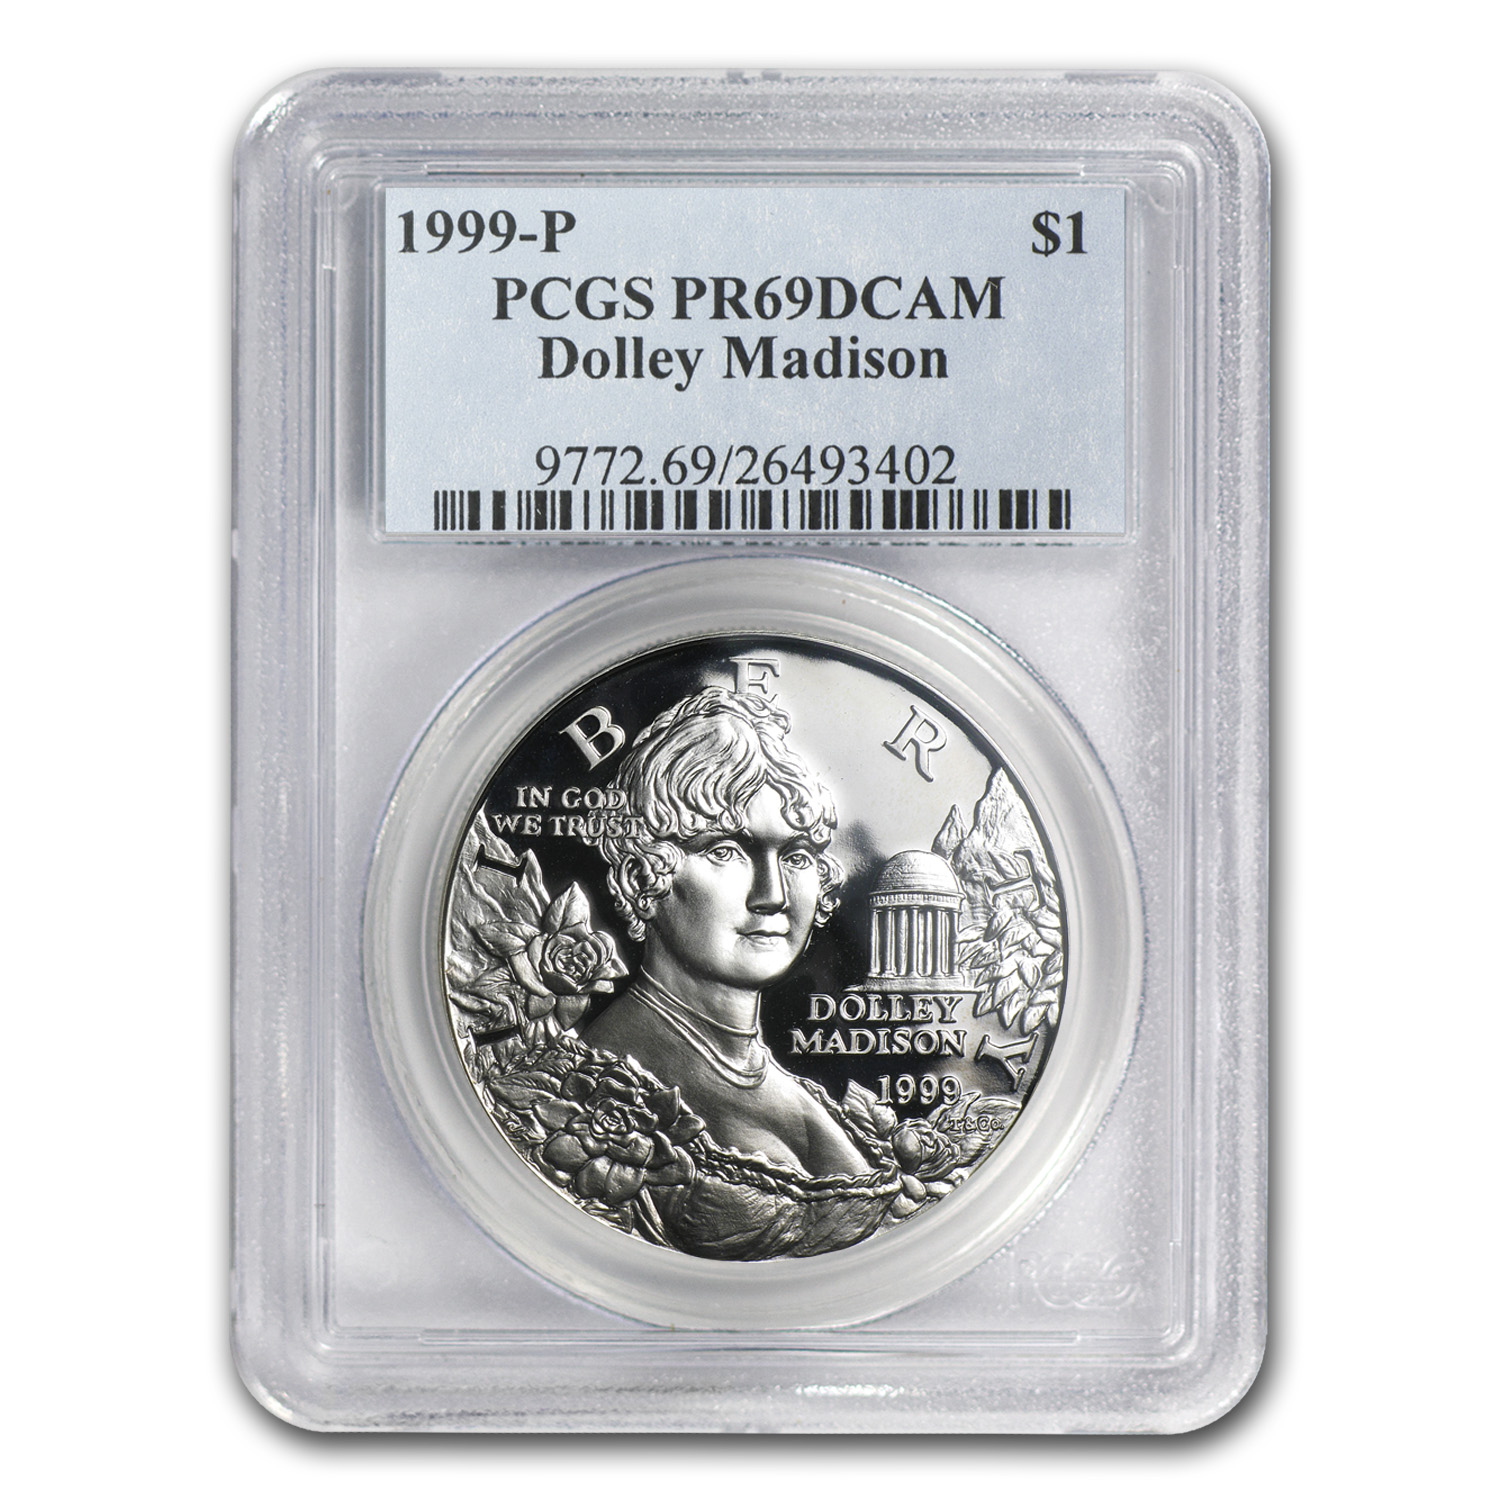 1999-P Dolley Madison $1 Silver Commem PR-69 PCGS